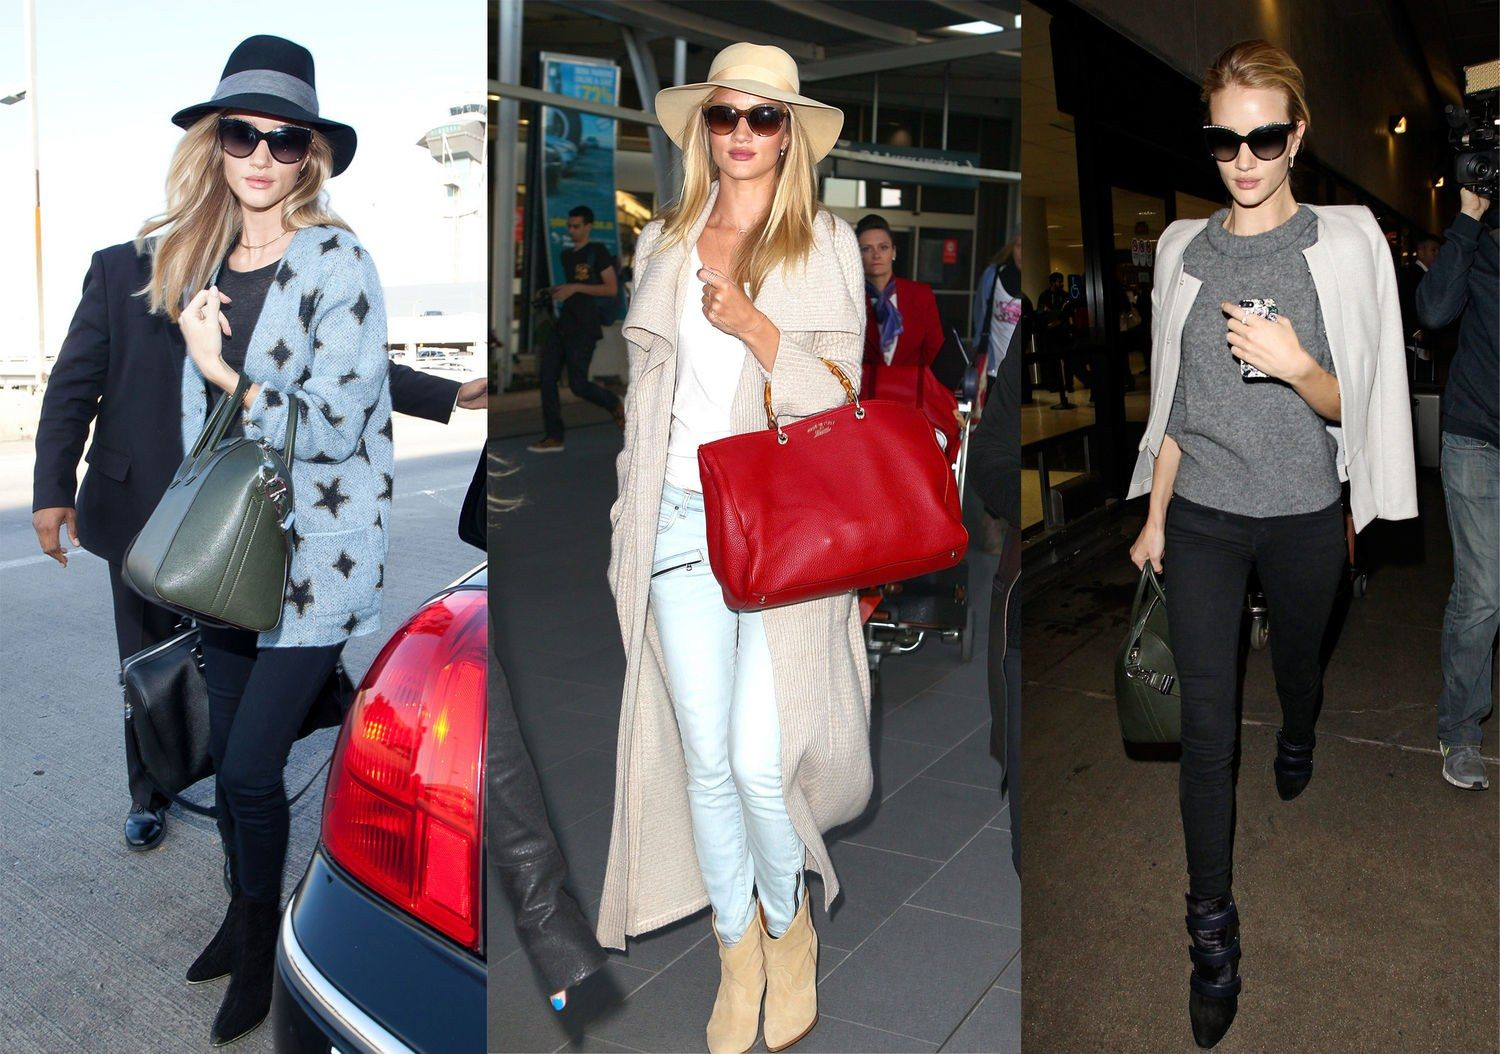 After spending much of 2013 scrolling through a gazillion celebrity pics, I can confidently say that mega-models have really good travel style. Even though...